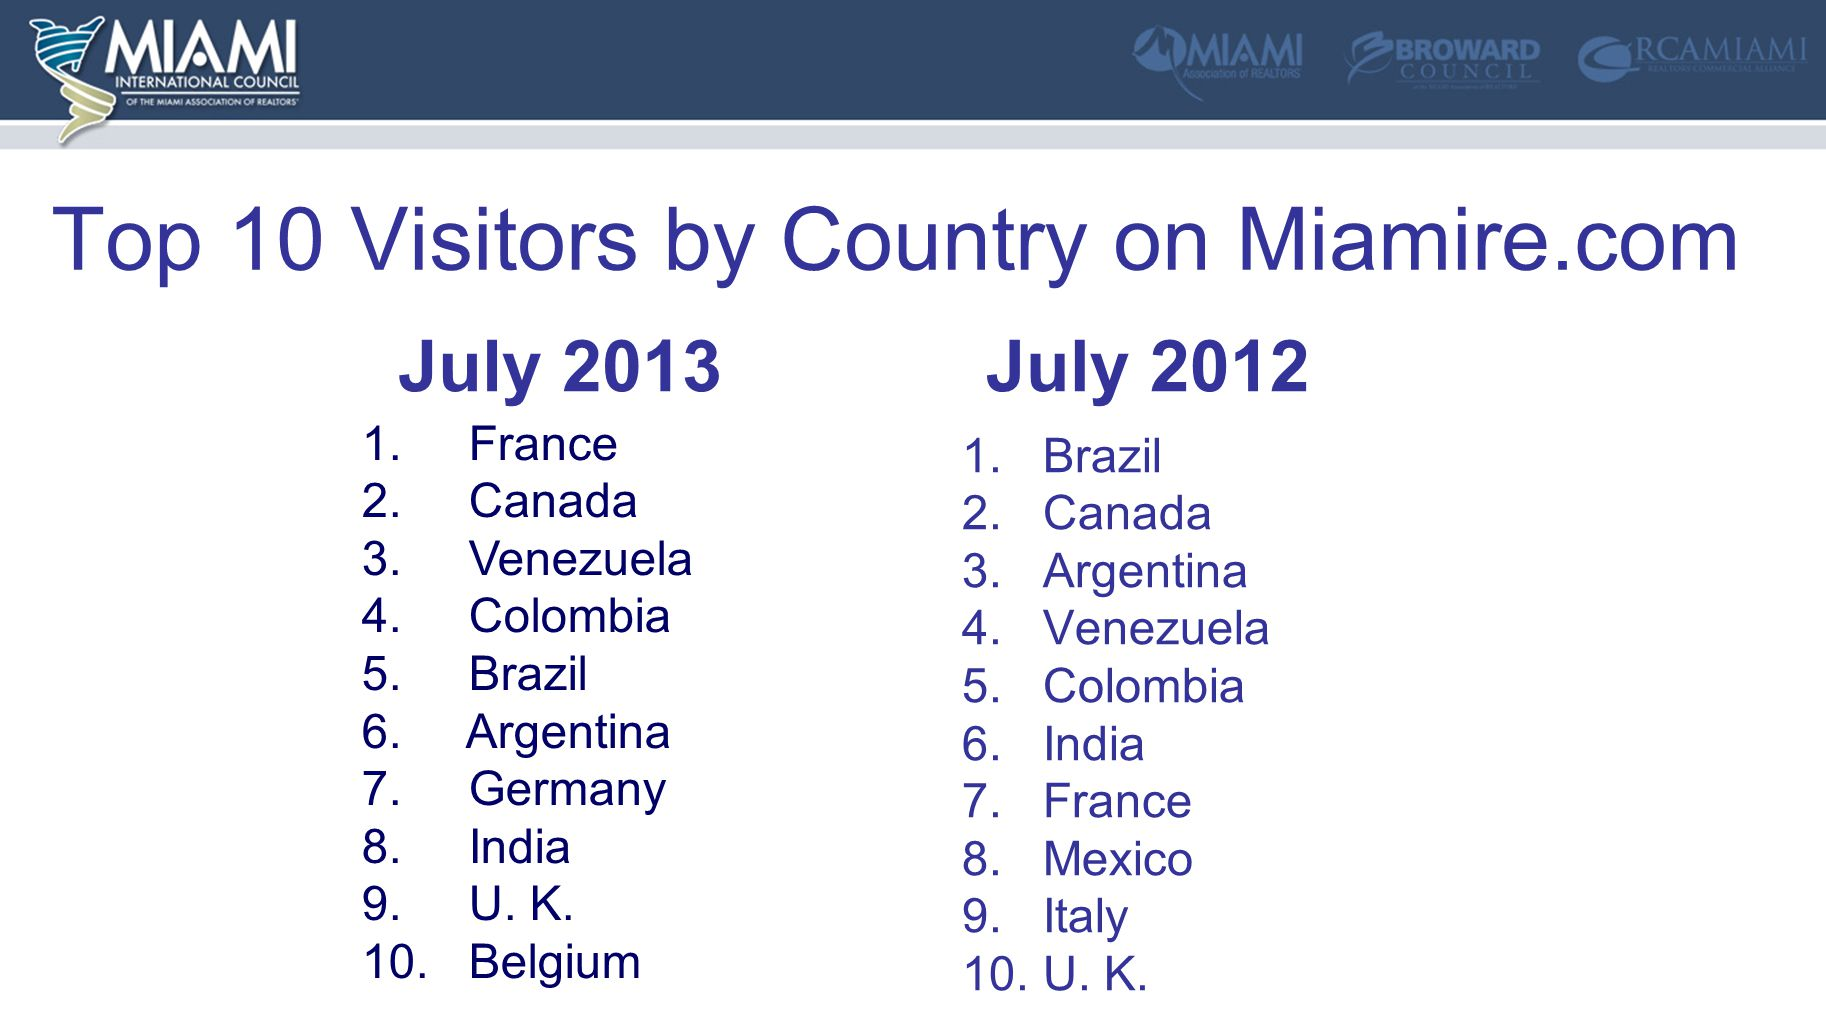 Top 10 Visitors by Country on Miamire.com July 2012 1.Brazil 2.Canada 3.Argentina 4.Venezuela 5.Colombia 6.India 7.France 8.Mexico 9.Italy 10.U.